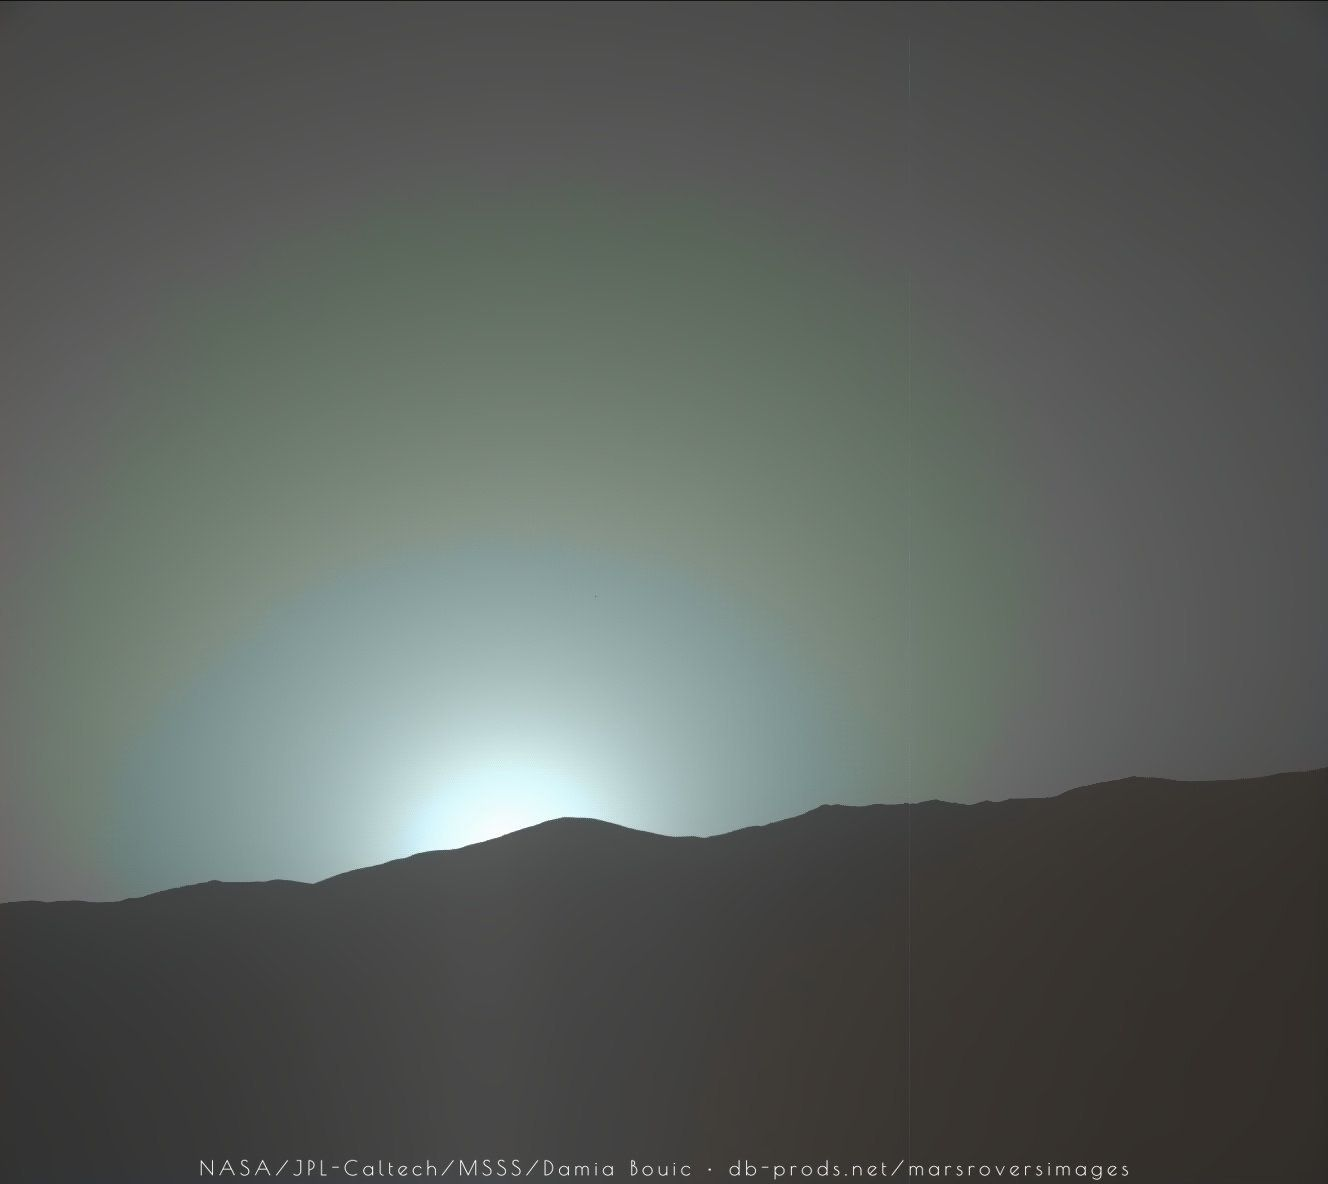 Curiosity Captures Another Stunning Blue Sunrise/Sunset On